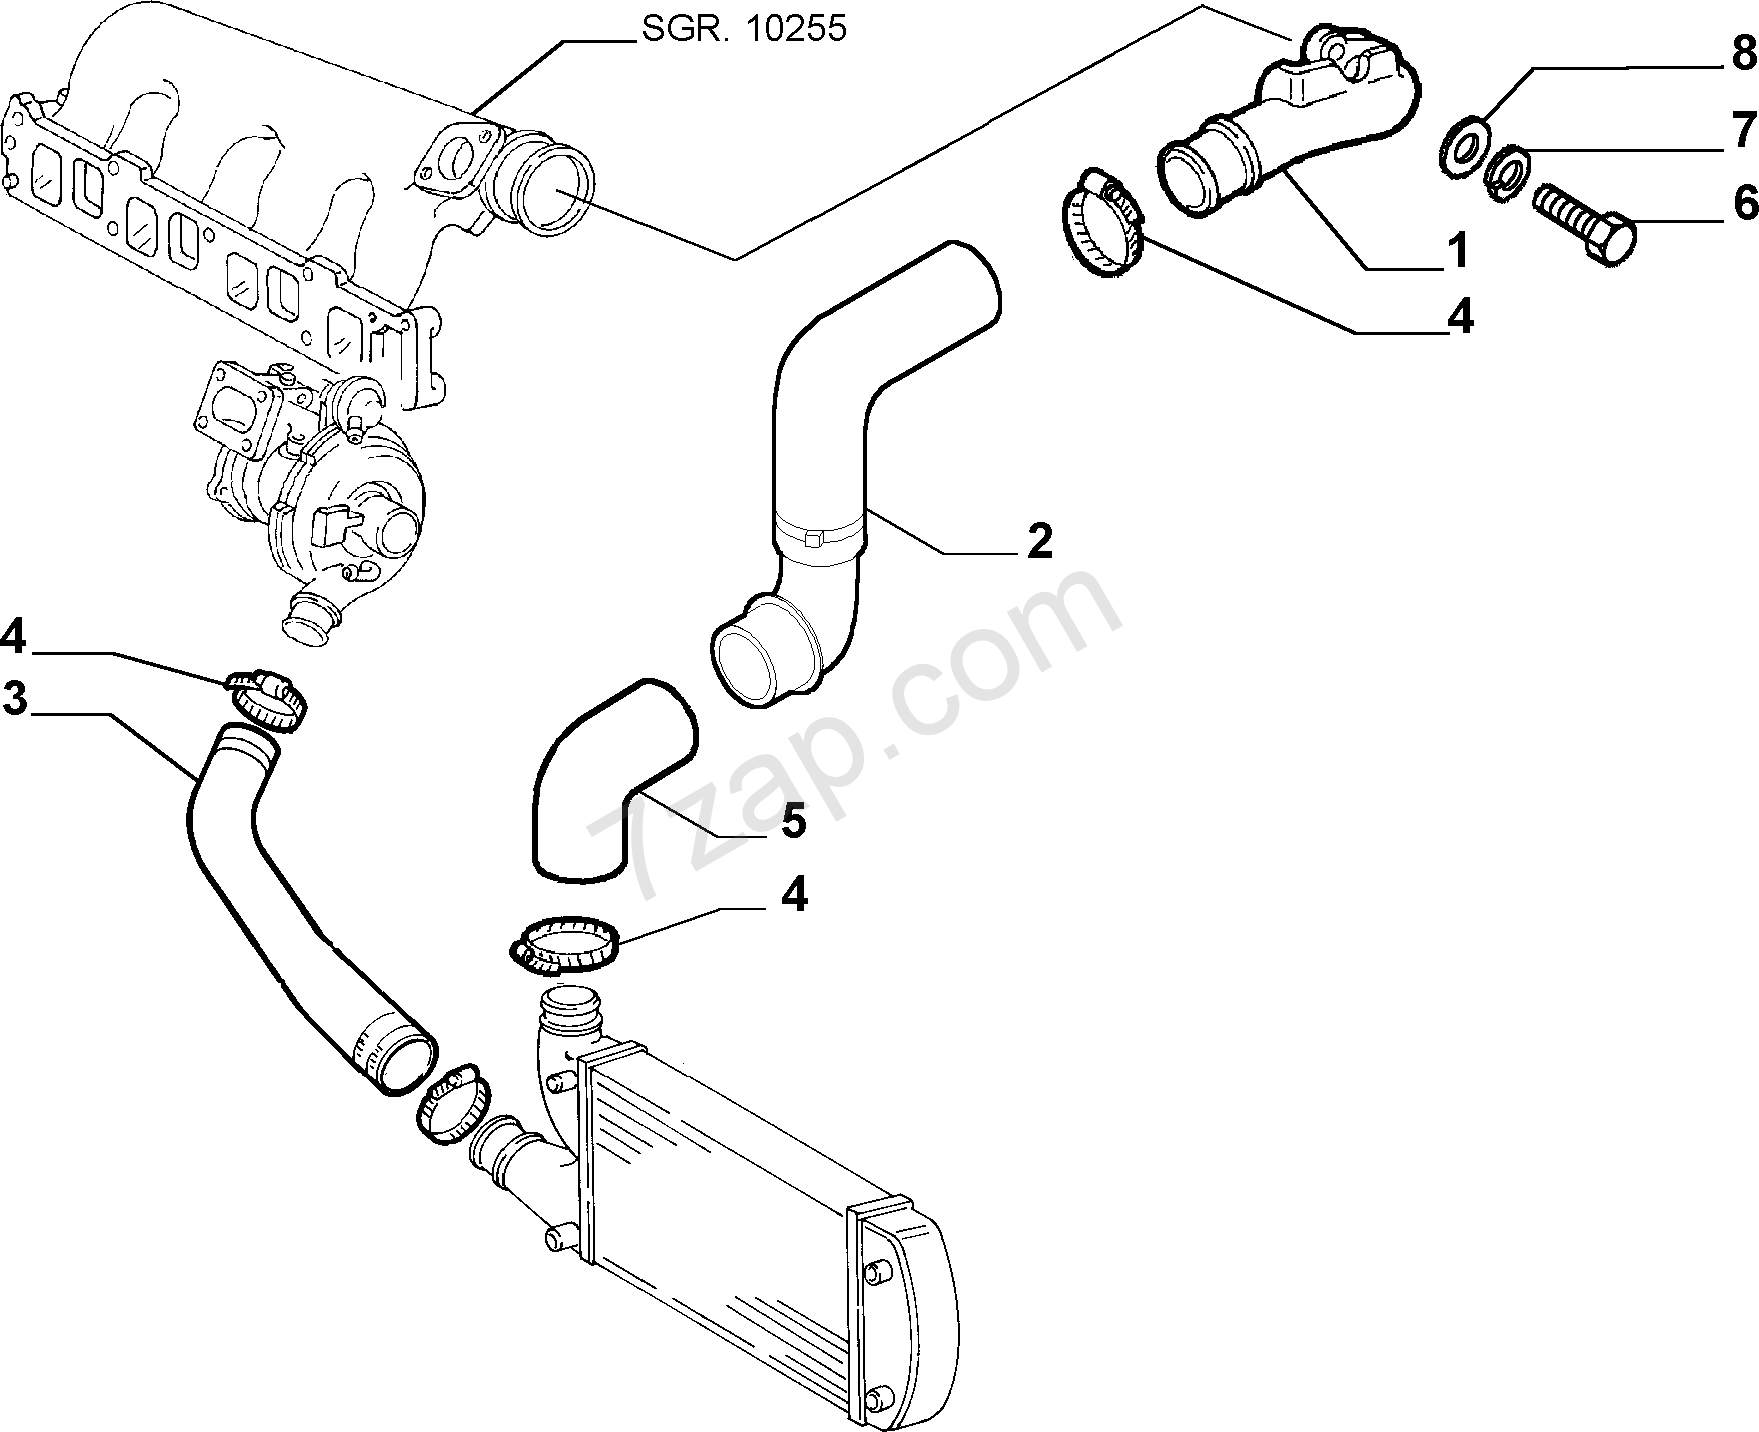 fiat diagrams   fiat x19 wiring harness